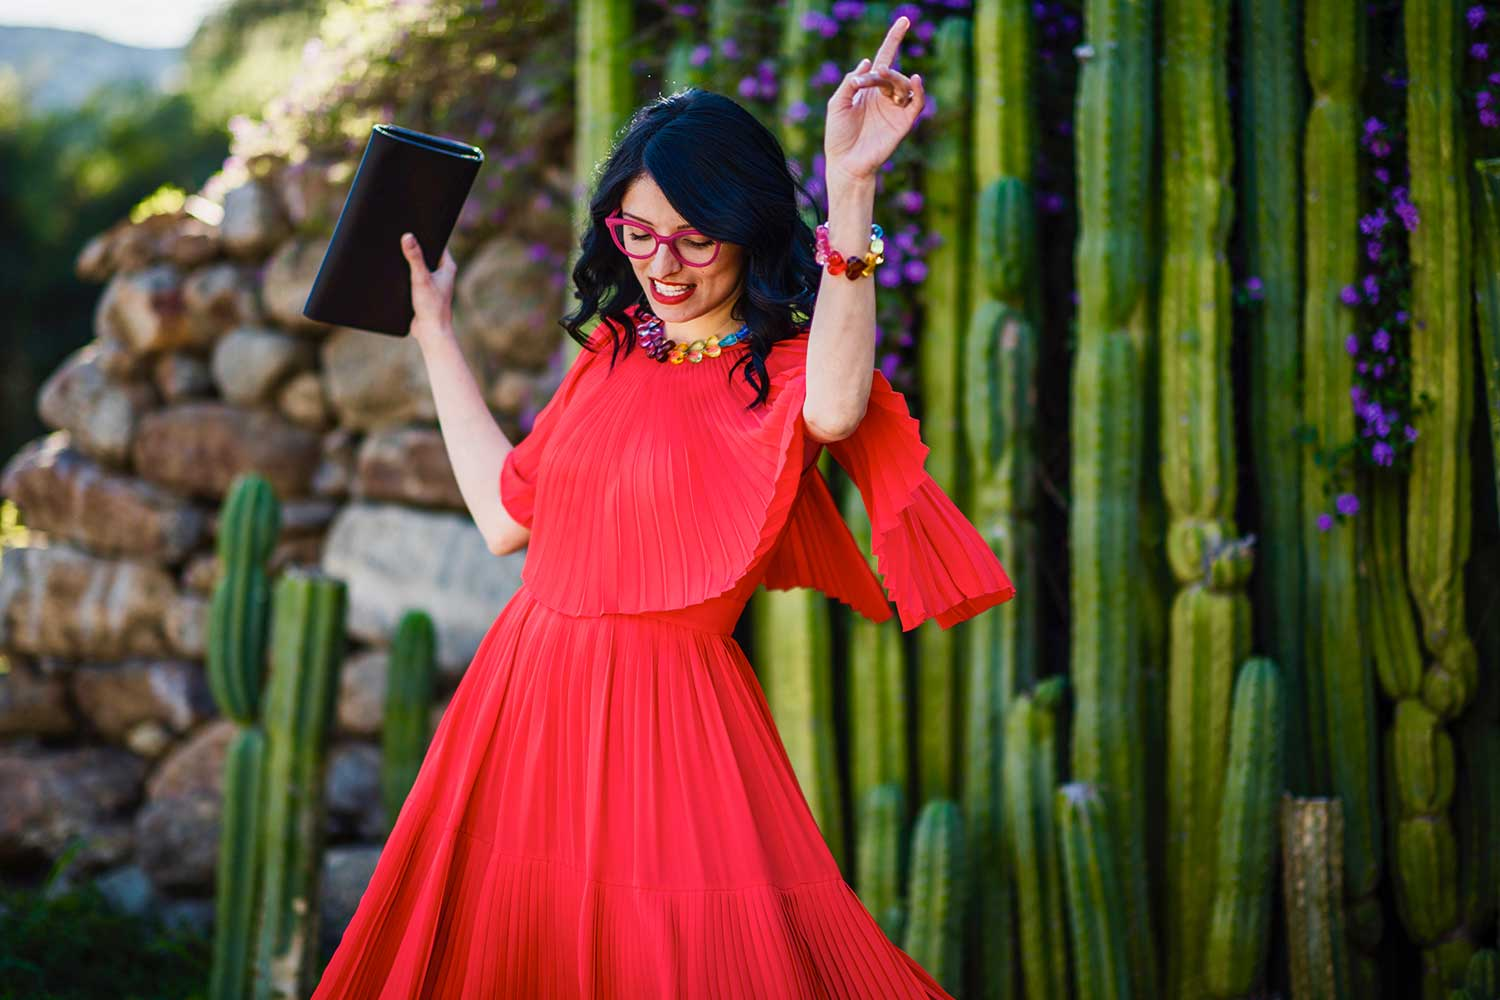 Jenna-Pilant-San-Diego-Style-Blogger-Lucky-Little-Mustardseed-What-To-Wear-To-A-Desert-Wedding-4